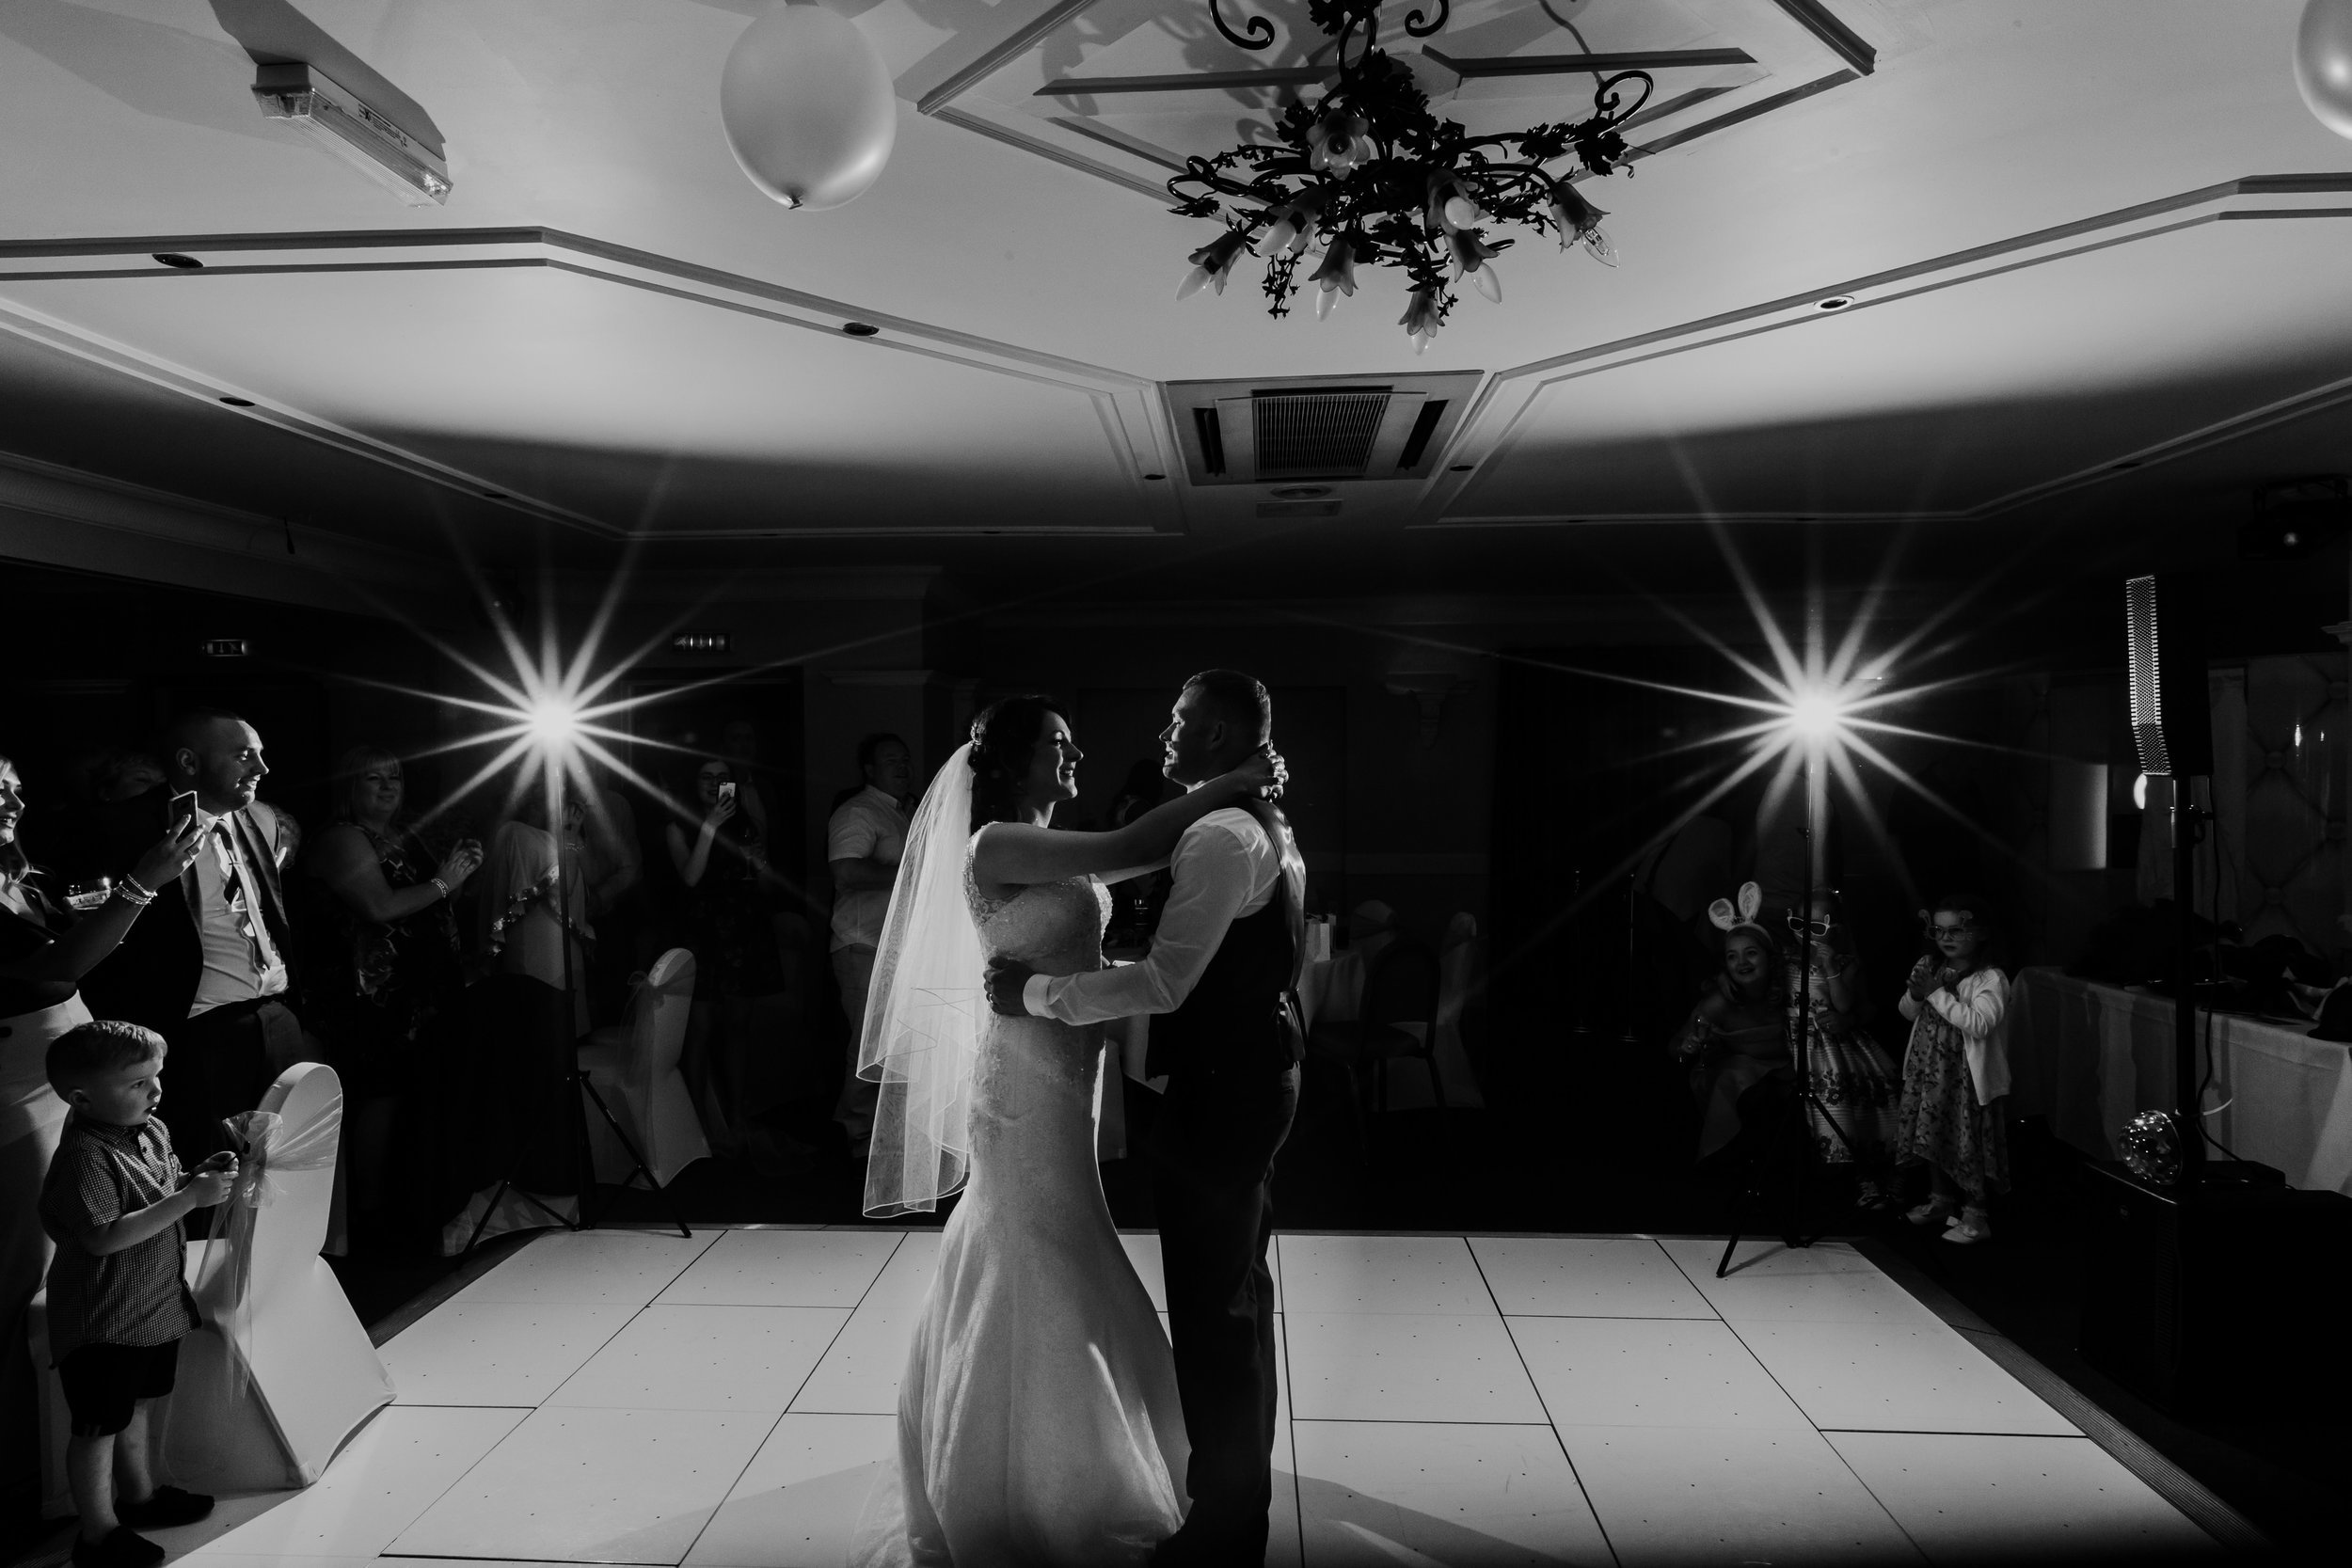 First dance shot of the bride and groom